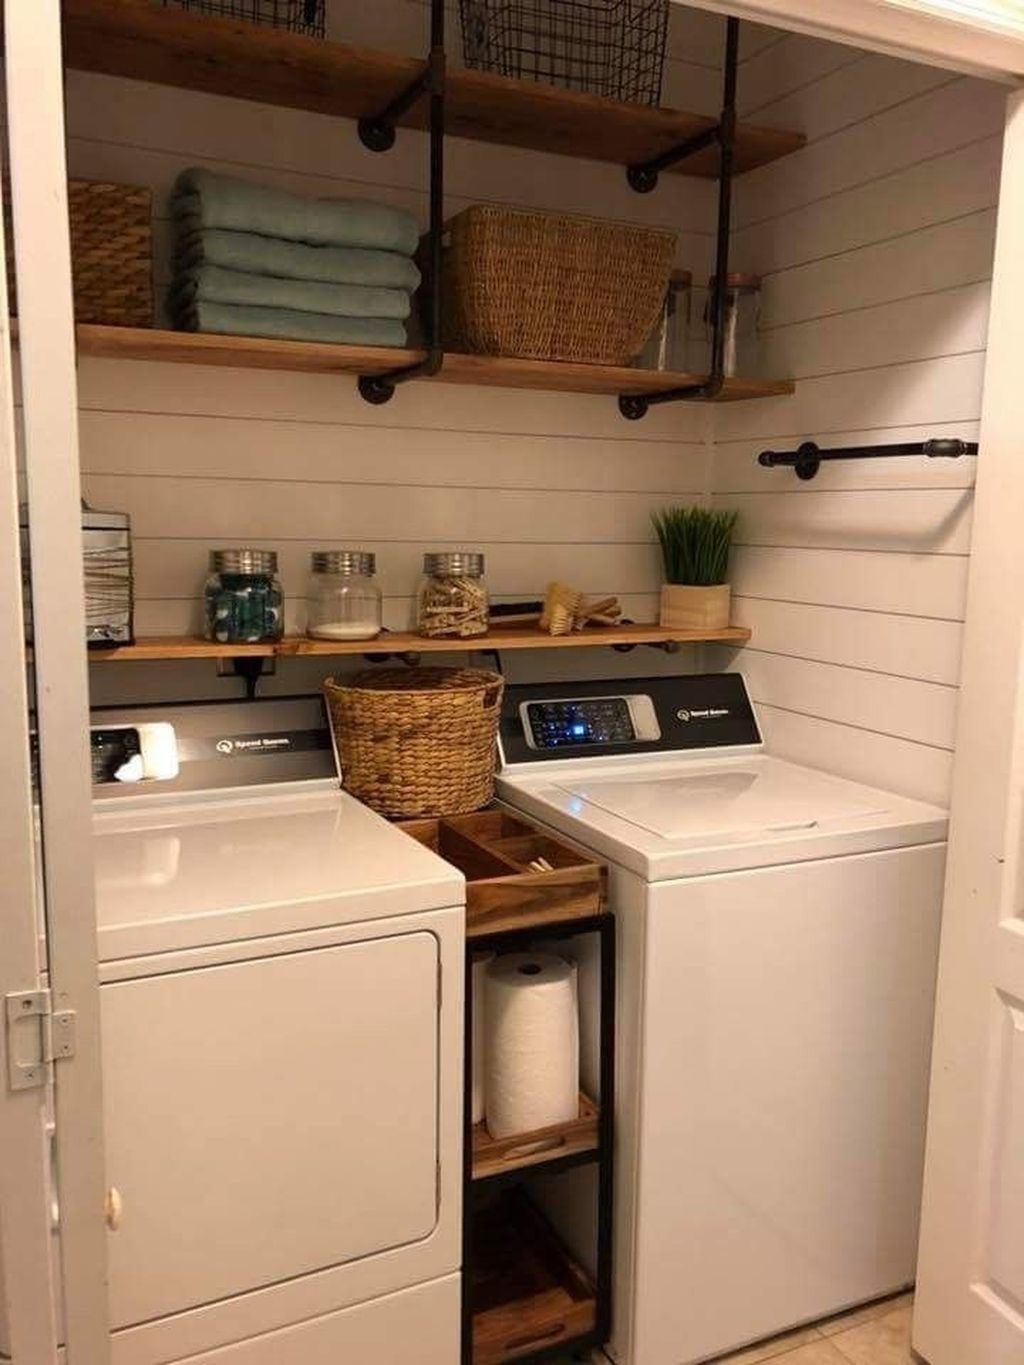 Cute Laundry Room Storage Shelves Ideas To Consider11